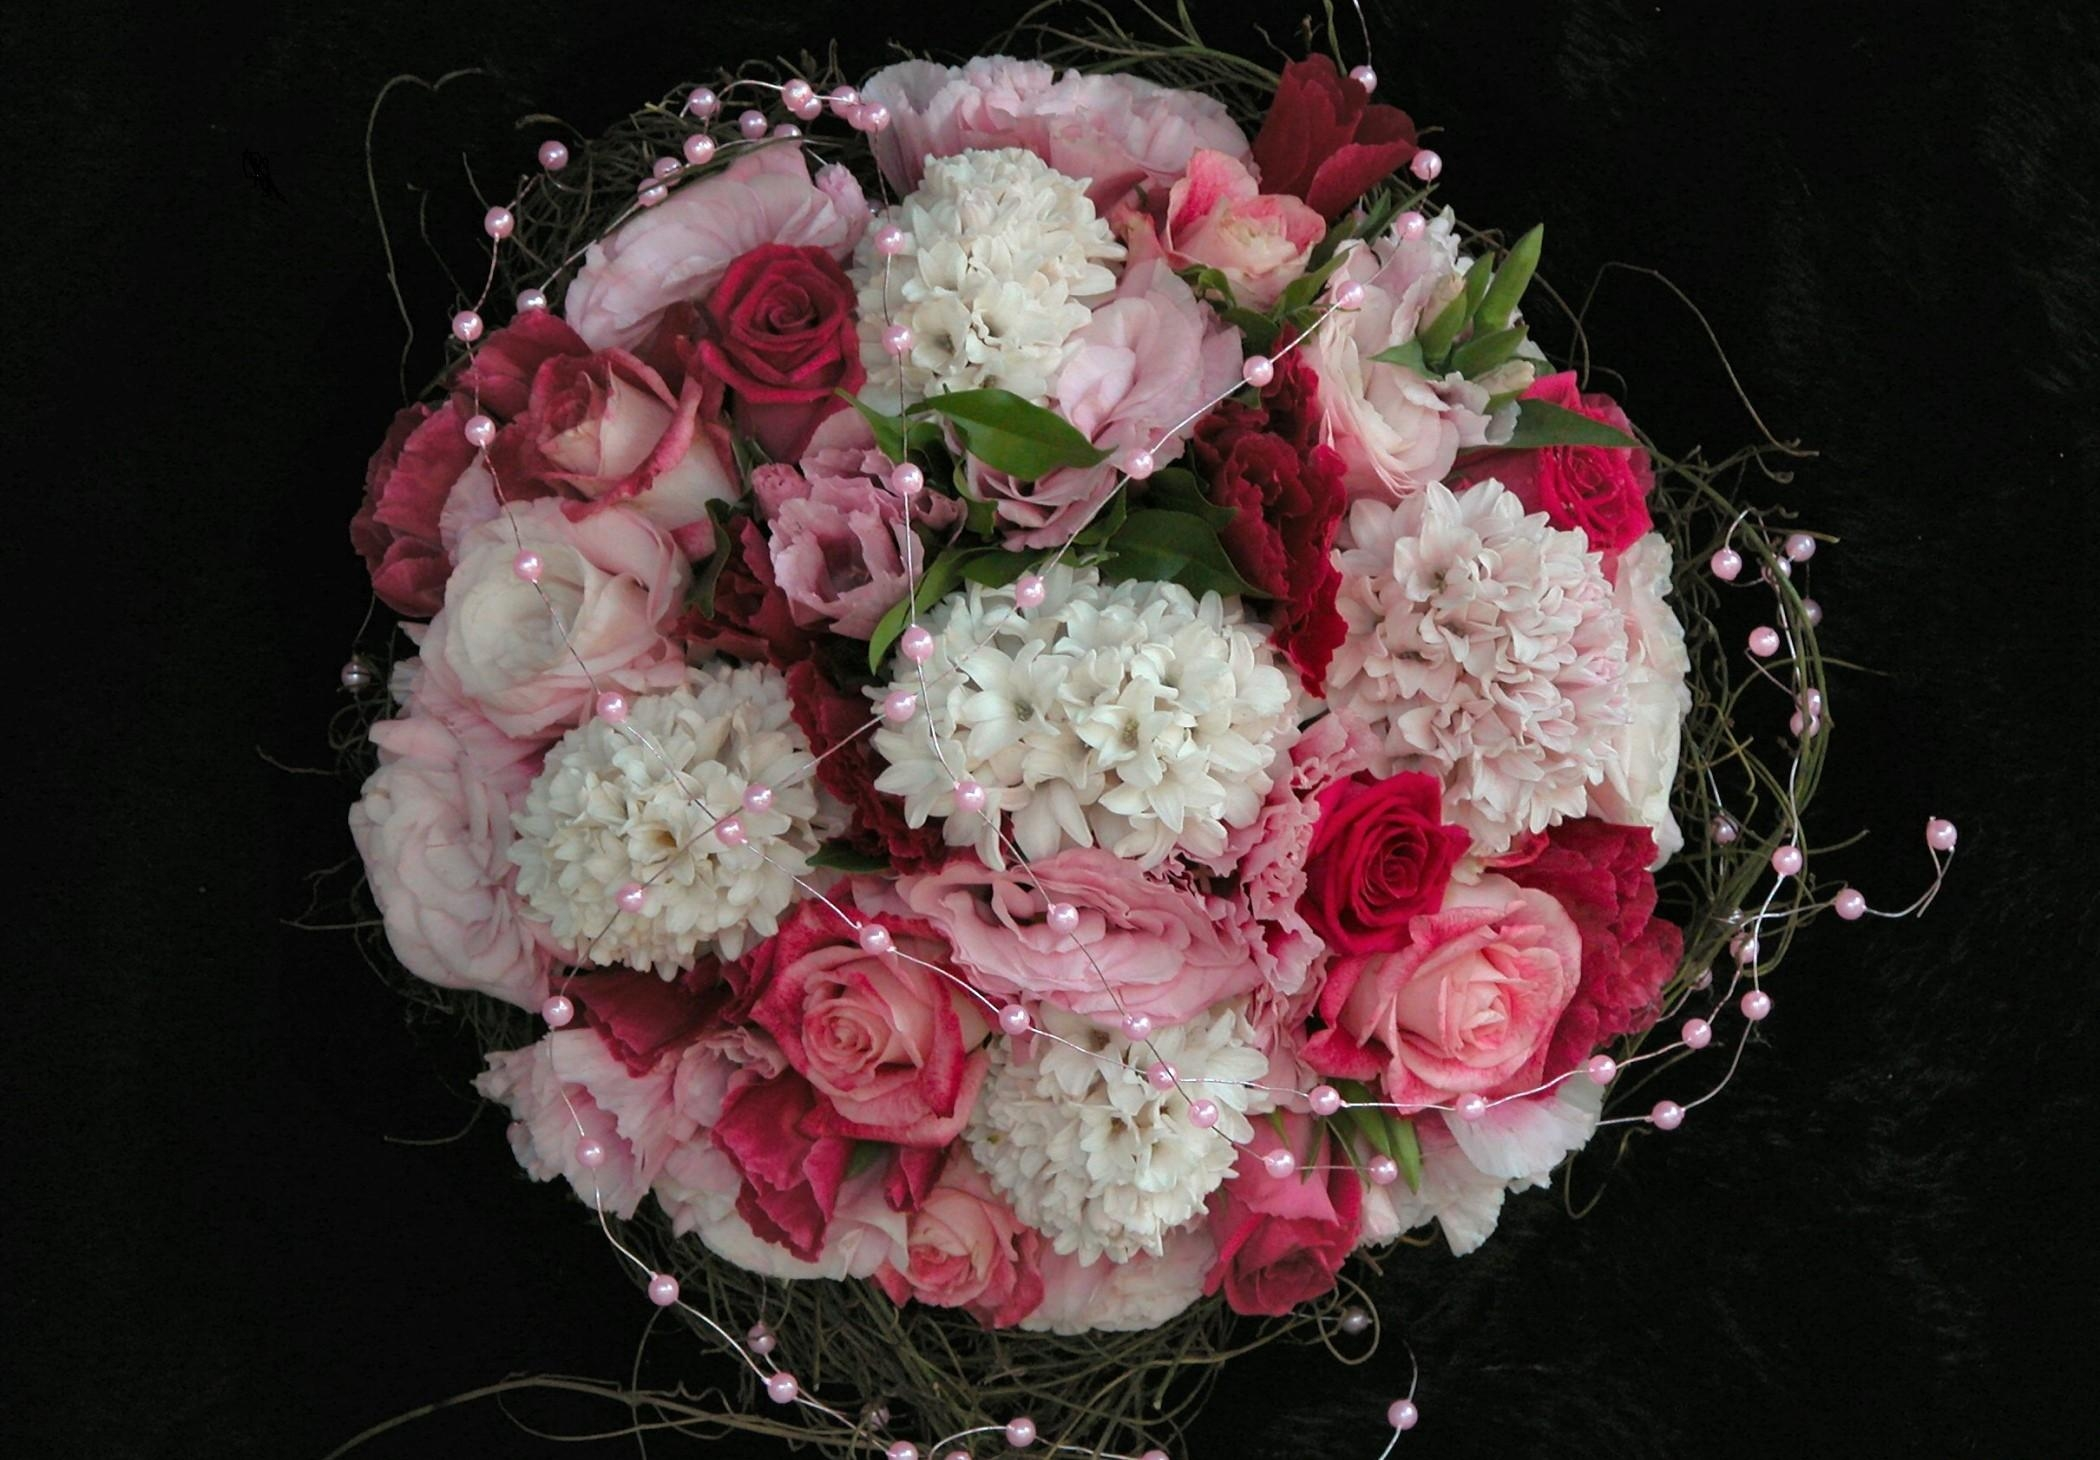 142913 download wallpaper Flowers, Bouquet, Composition, Beads, Black Background, Registration, Typography, Roses screensavers and pictures for free